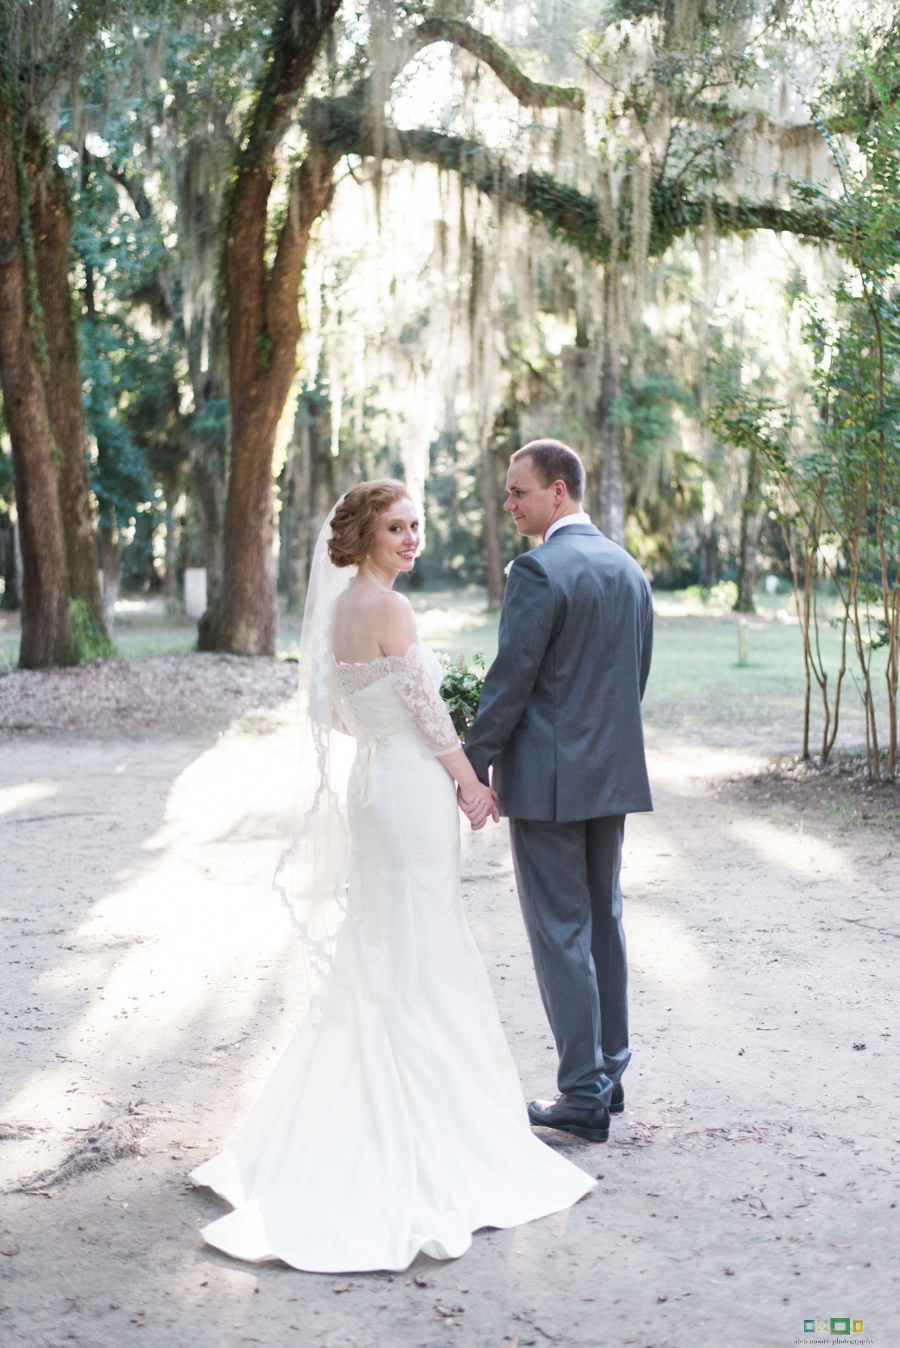 alea-moore-photography-Daufuskie-Island-wedding-ivory-and-beau-bridal-boutique-dakota-nicole-miller-rebecca-schoneveld-marisol-classic-southern-wedding-savannah-wedding-dresses-savannah-bridal-boutique-savannah-weddings-savannah-bridal-gowns-5.jpg